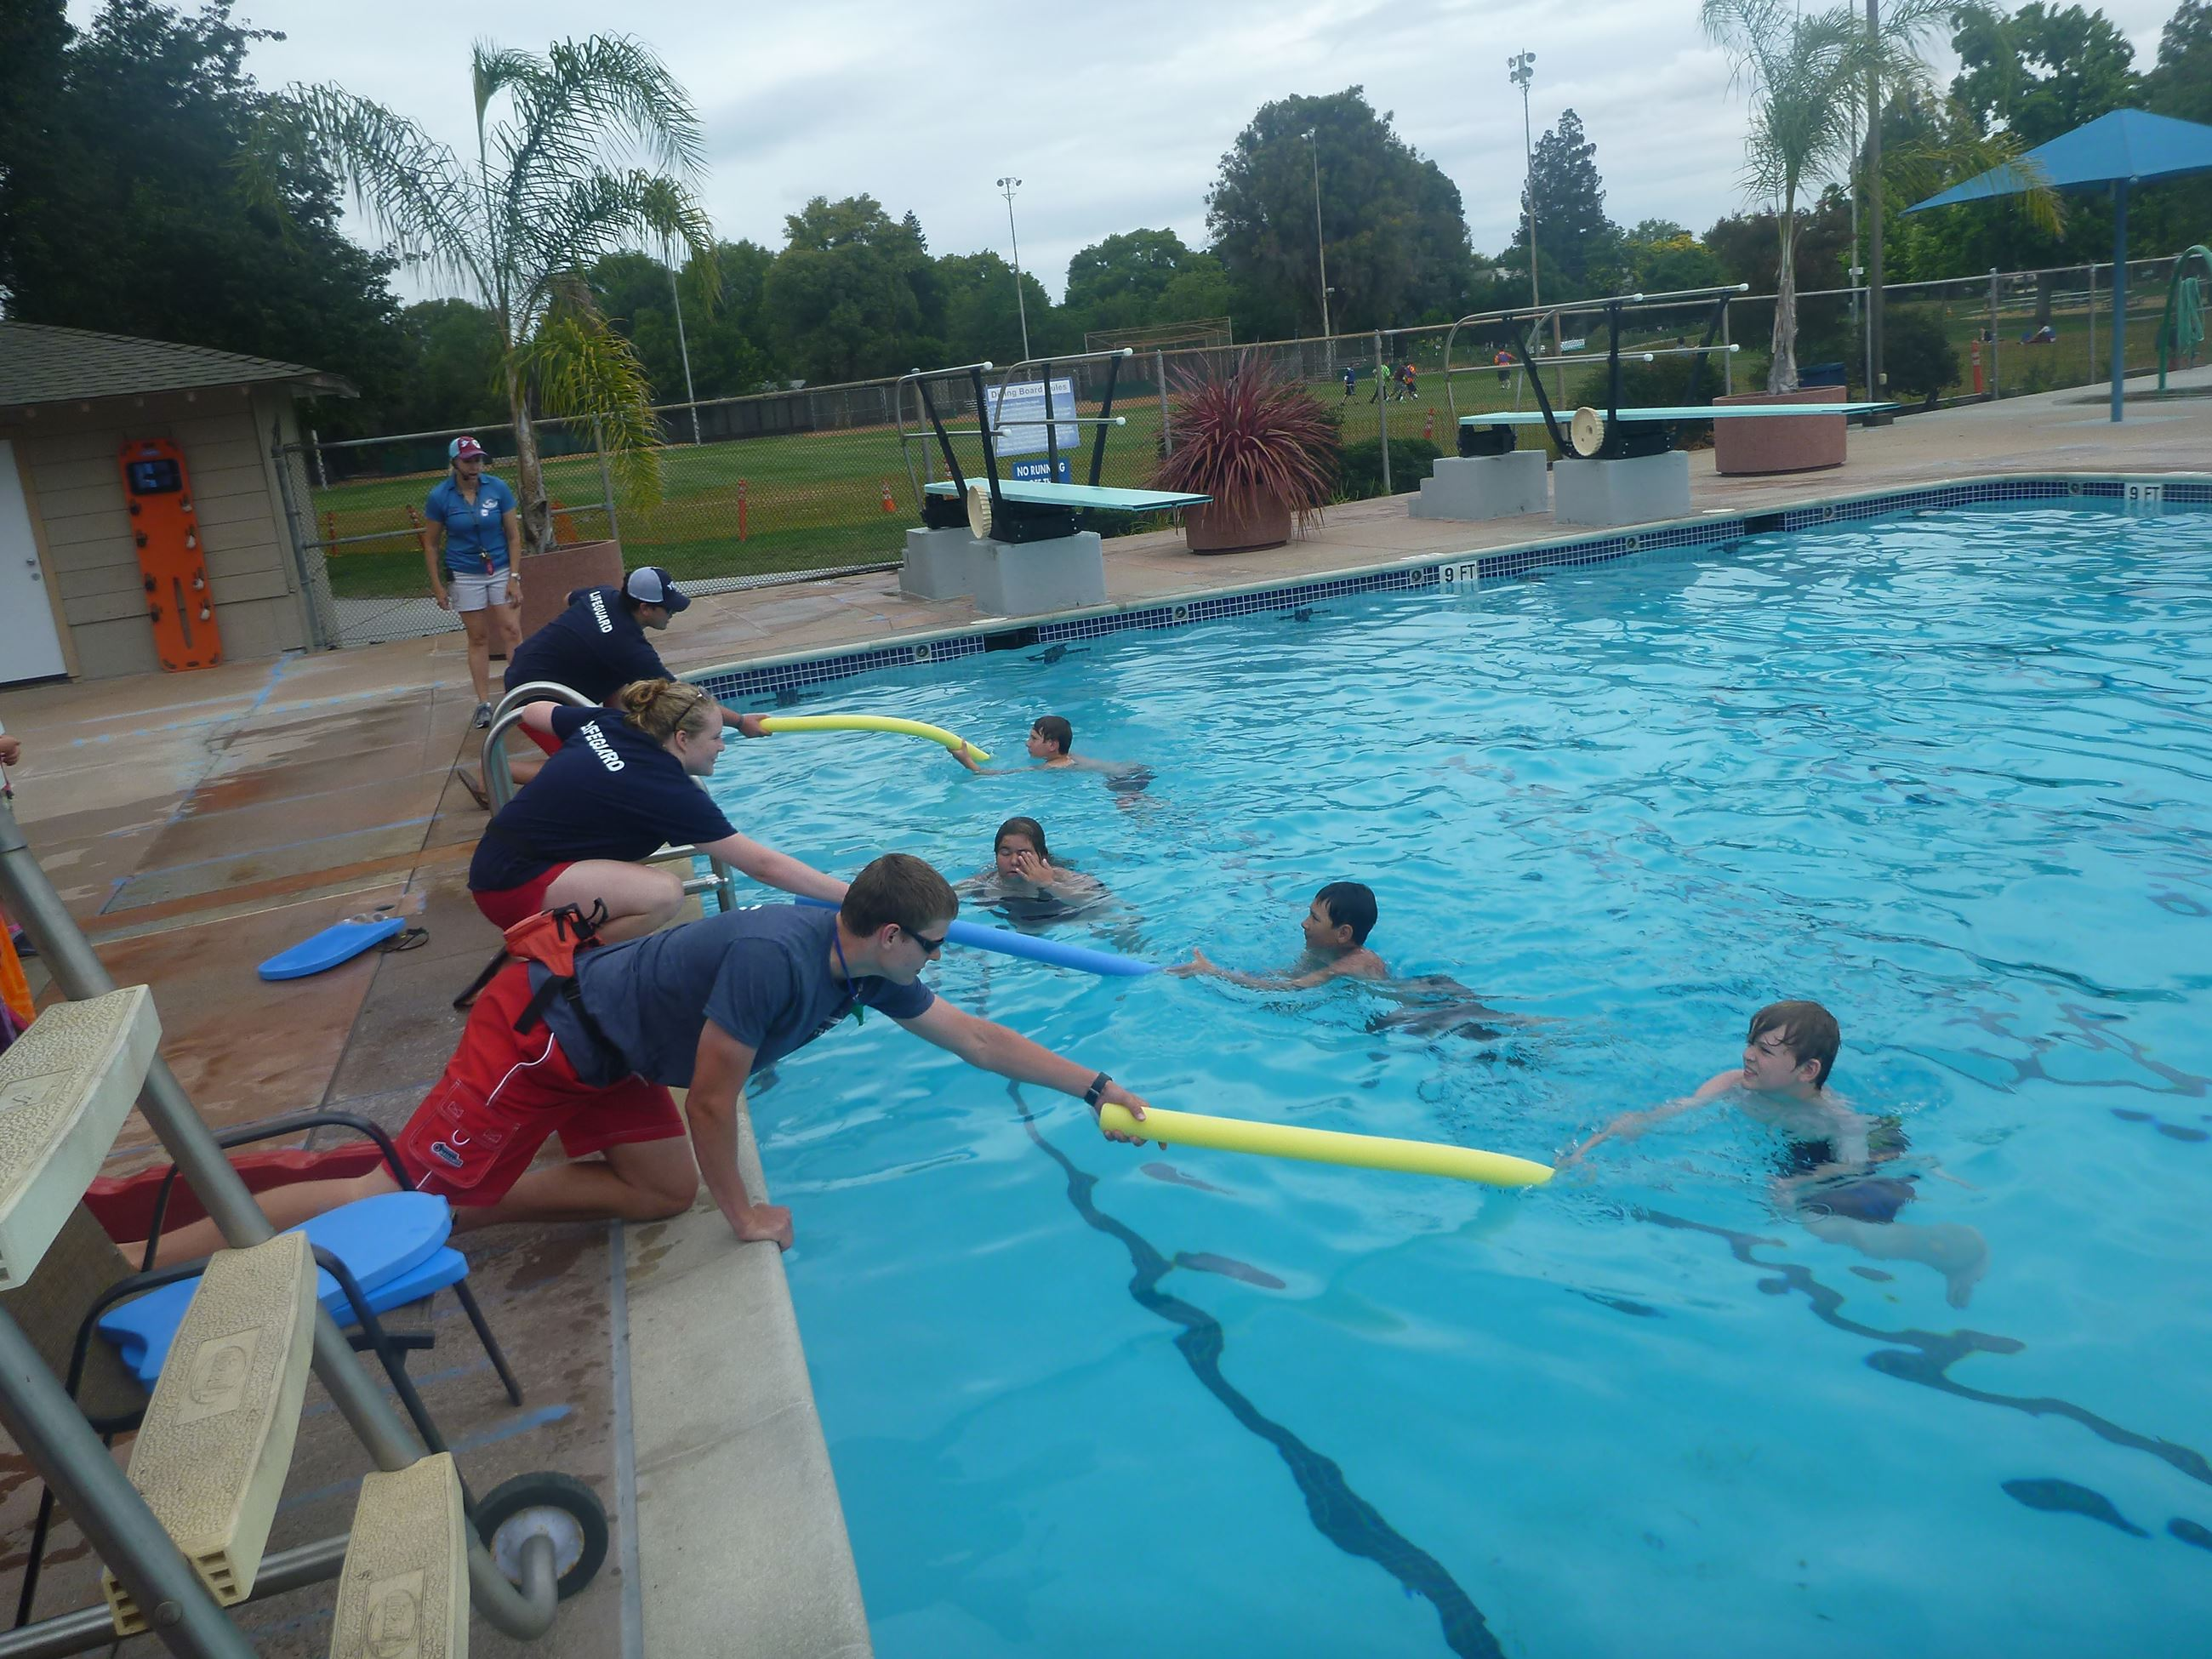 Lifeguards demonstrating reaching assists at Pool Safety Day